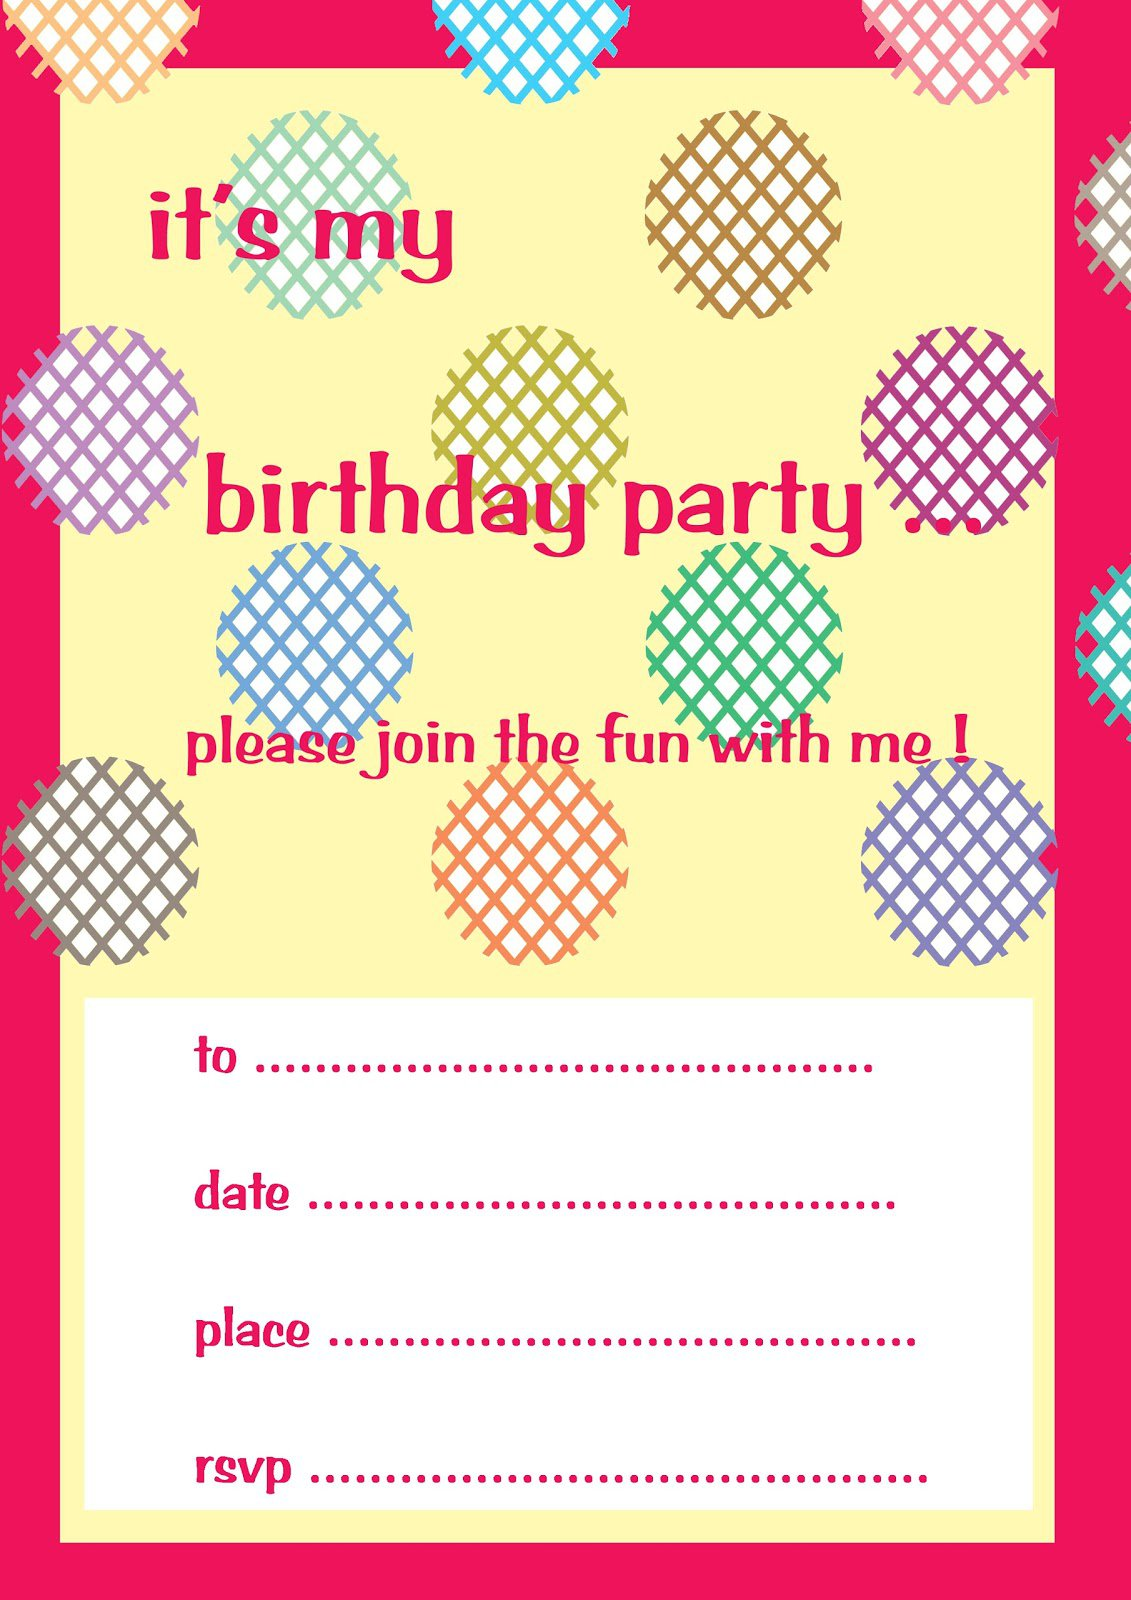 Printable Invitations For Kids Party 2015